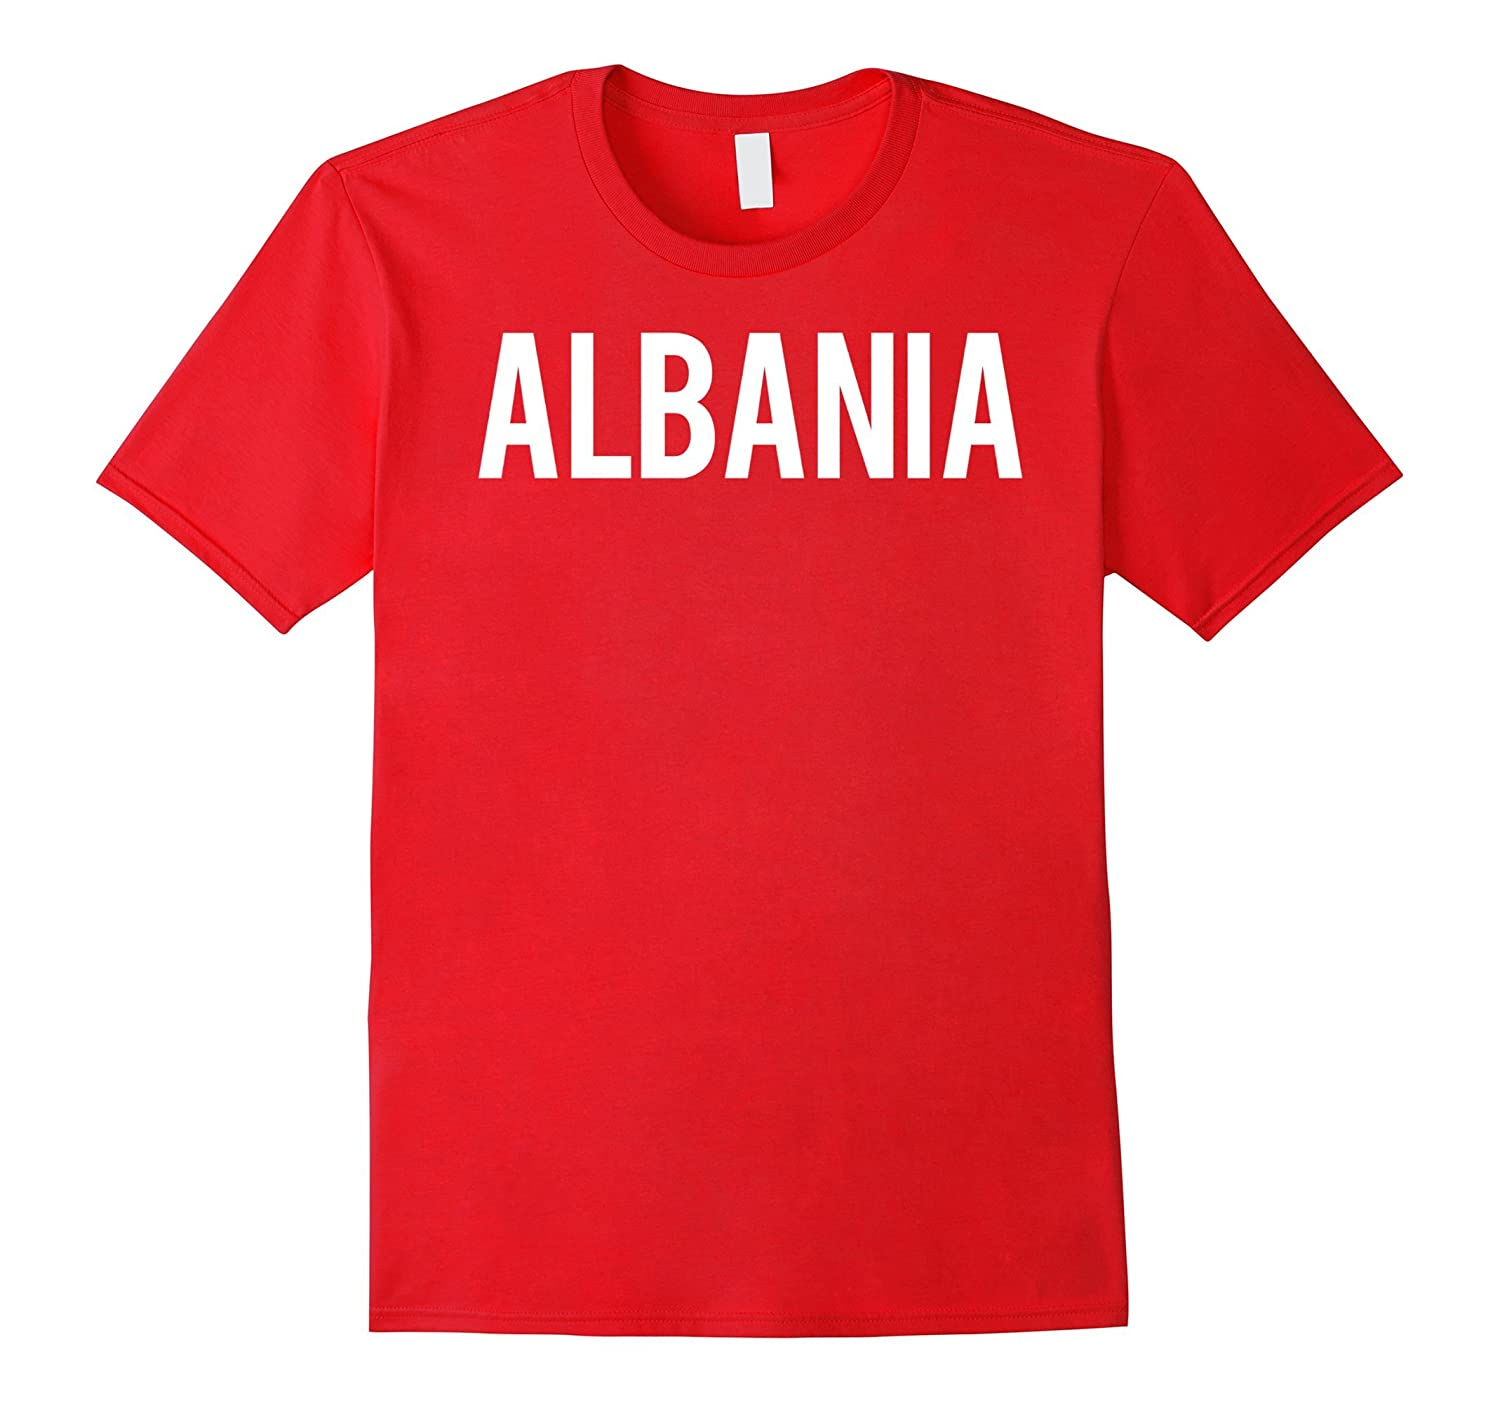 Albania T Shirt Cool Albanian flag fan funny cheap gift tee-PL